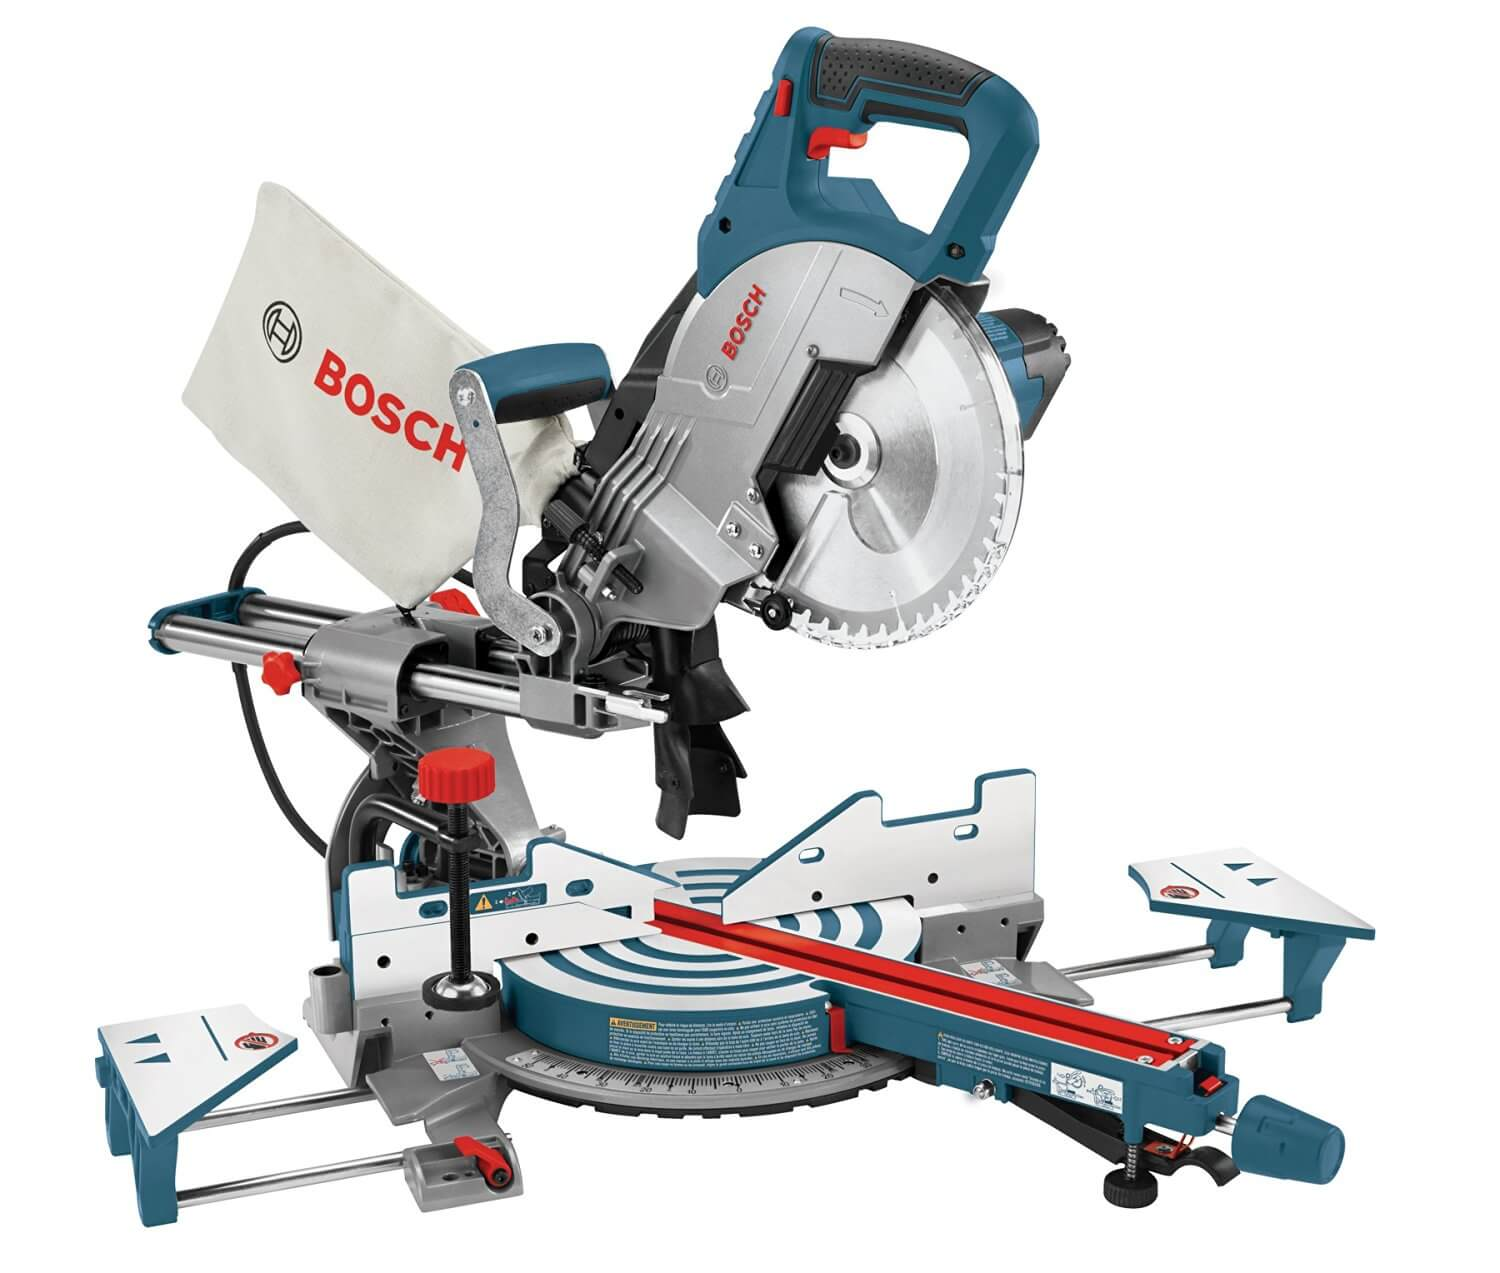 Bosch CM8S Compound Miter Saw